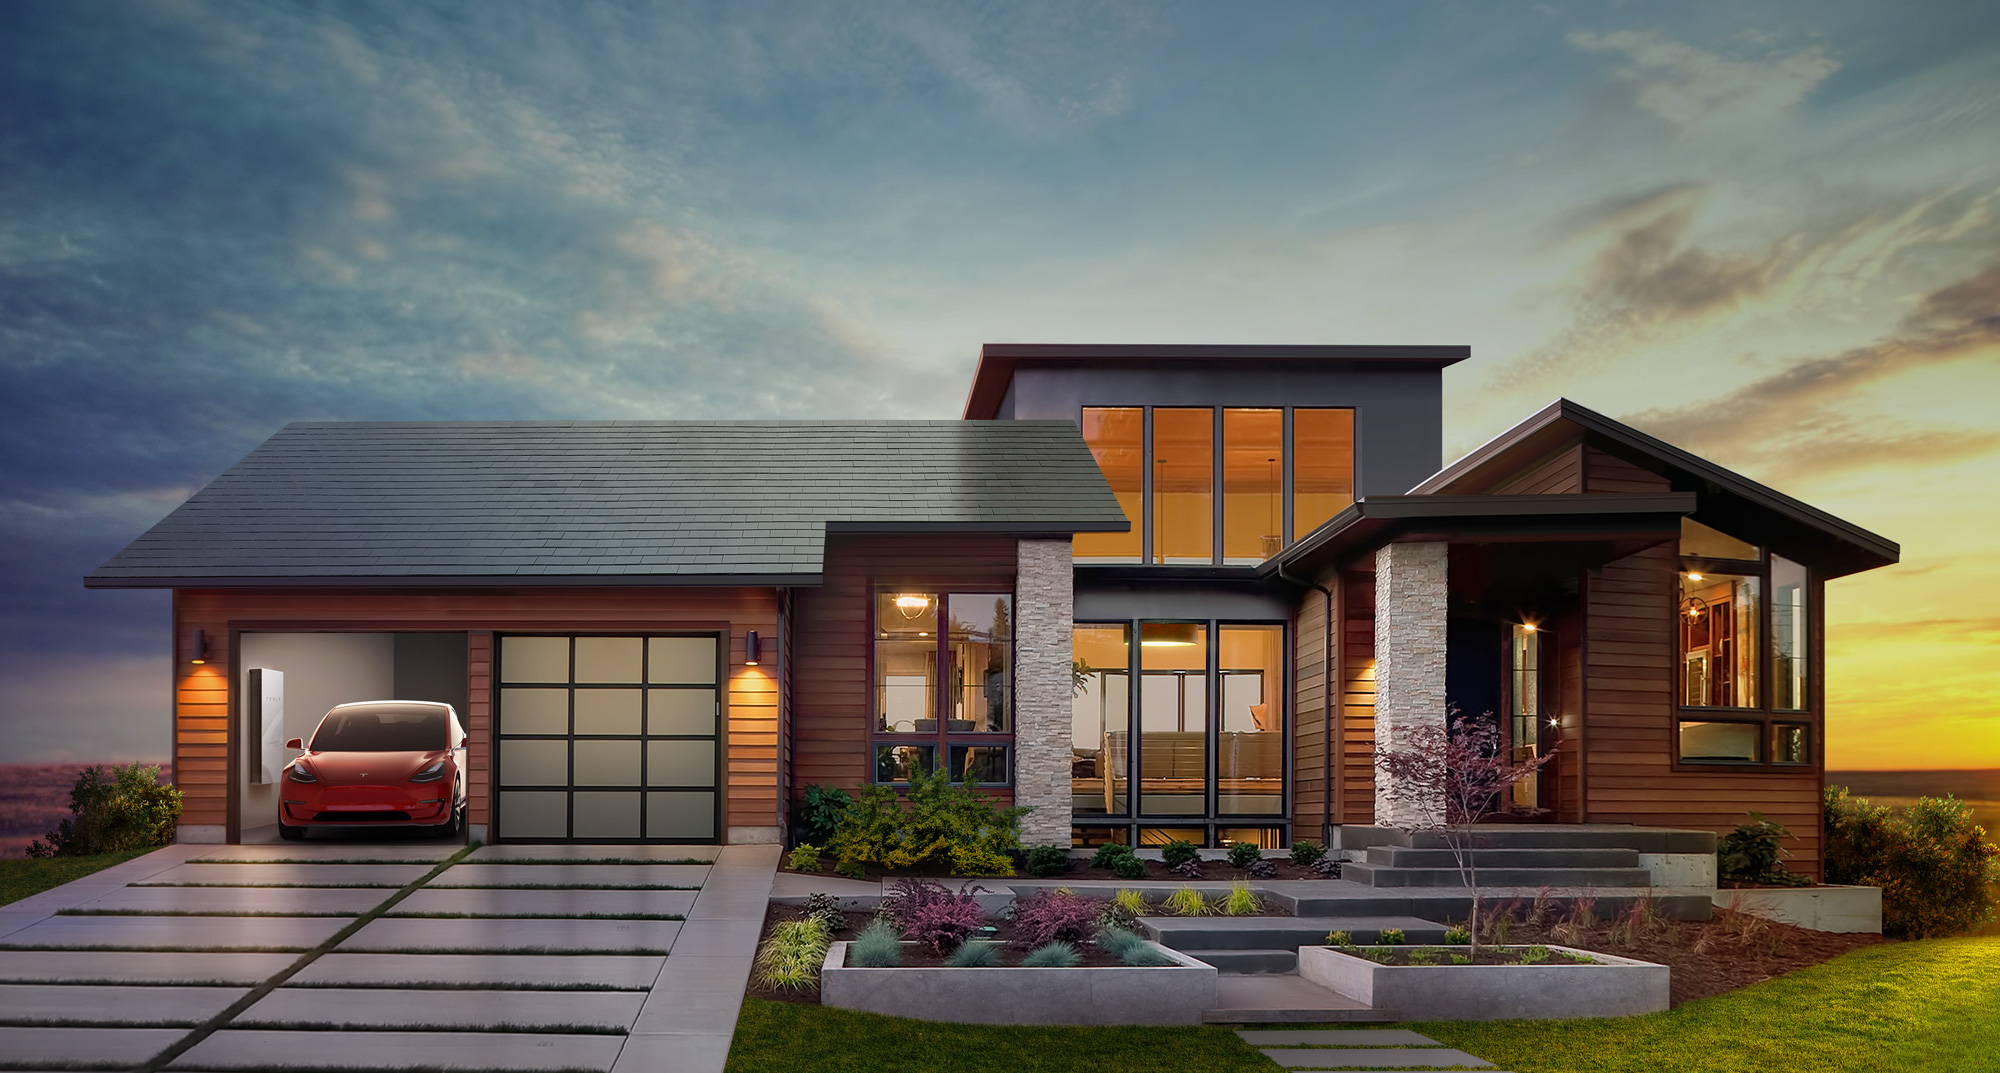 acquisition, tesla, solar panels, elon musk, solarcity, solar roof, powerwall 2